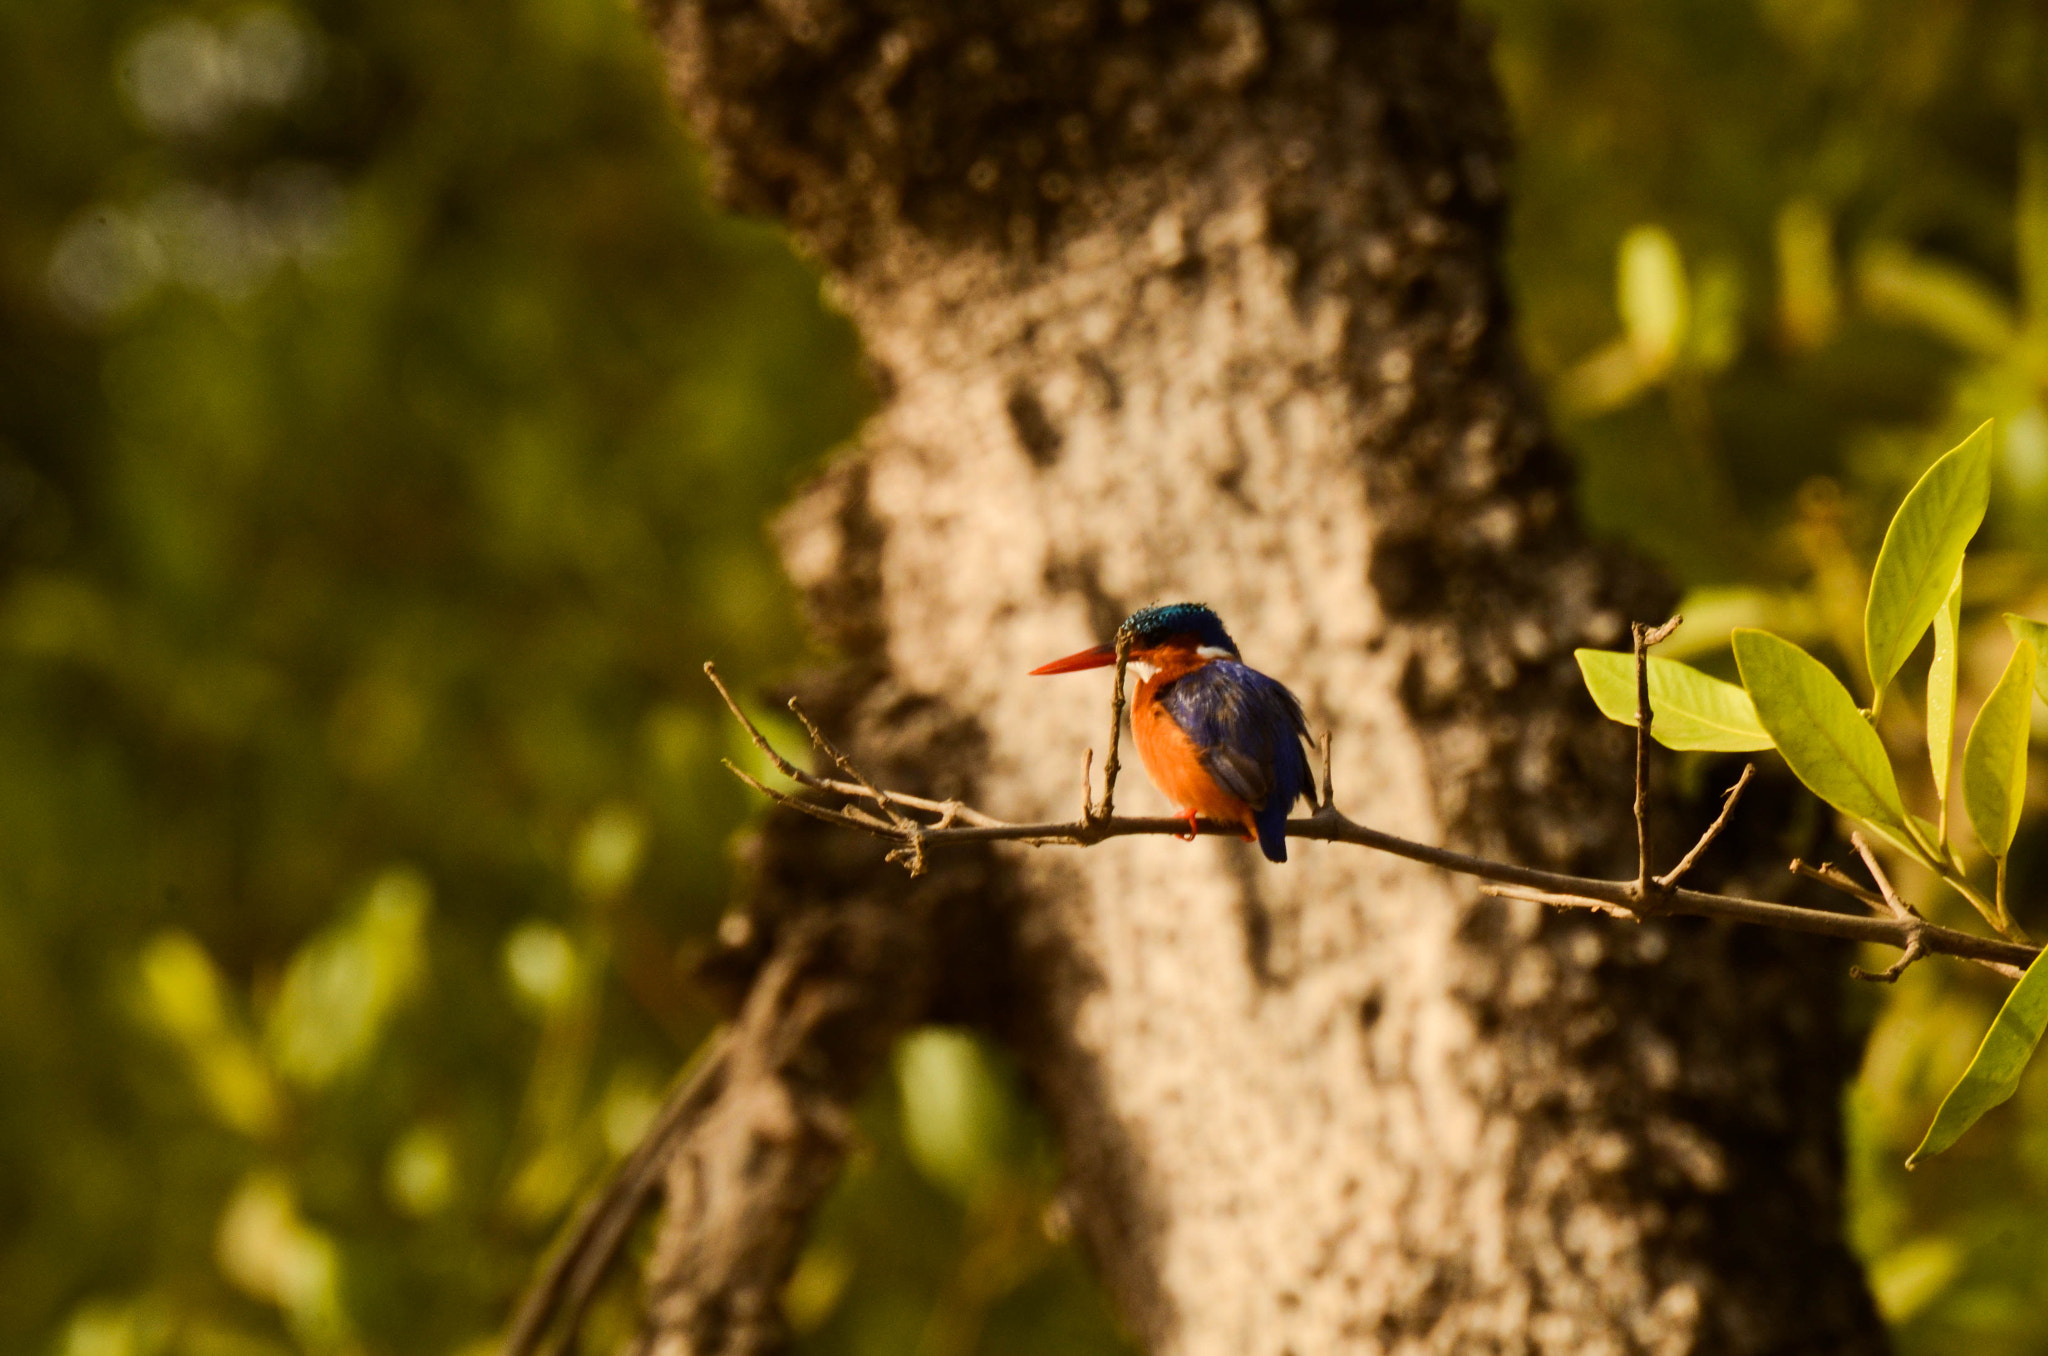 Photograph Malachite Kingfisher by Trish Waller on 500px